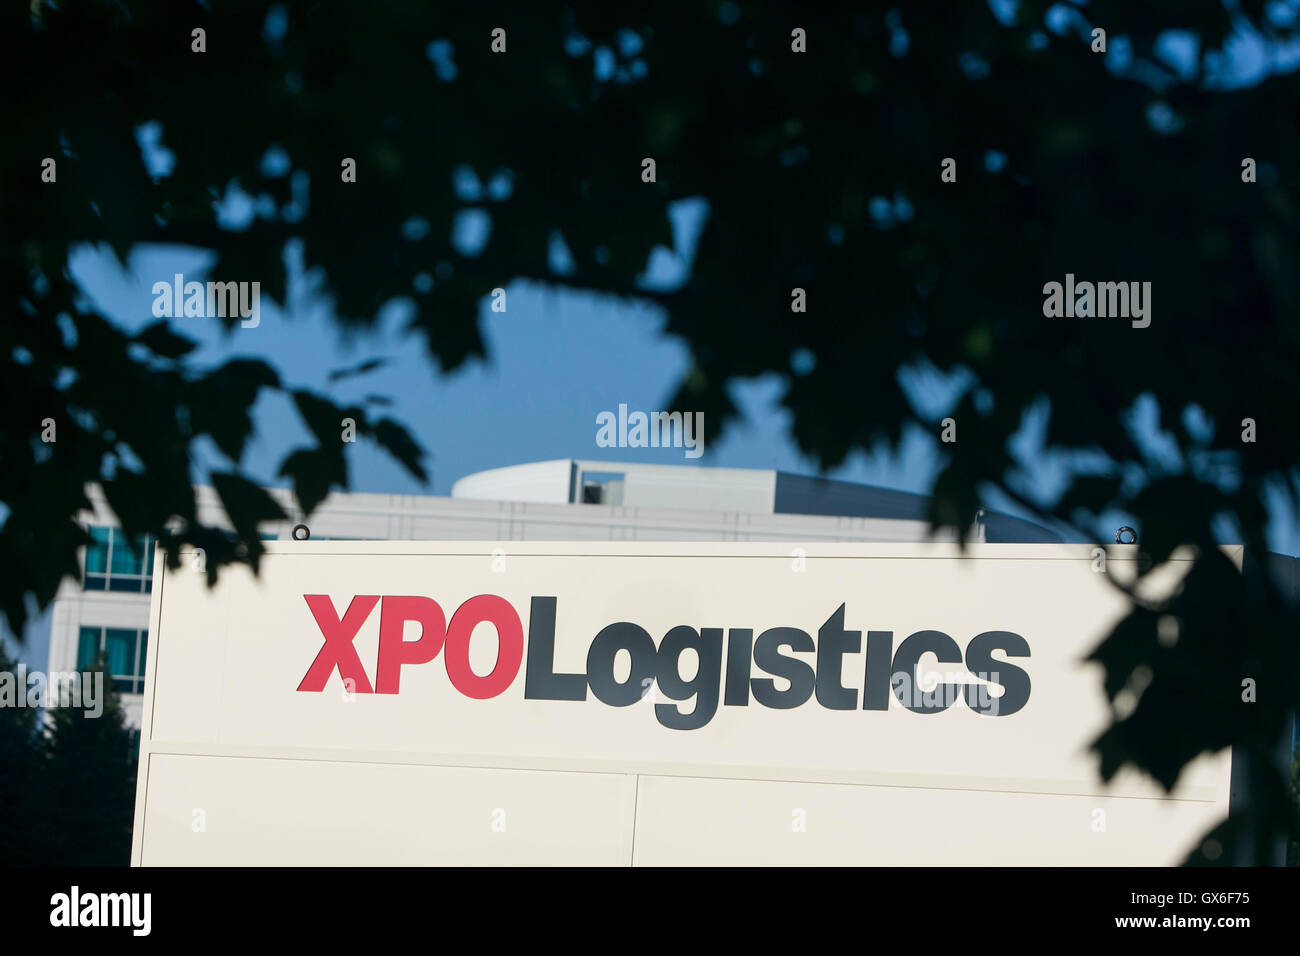 A logo sign outside of a facility occupied by XPO Logistics, Inc., in Dublin, Ohio on July 23, 2016. - Stock Image